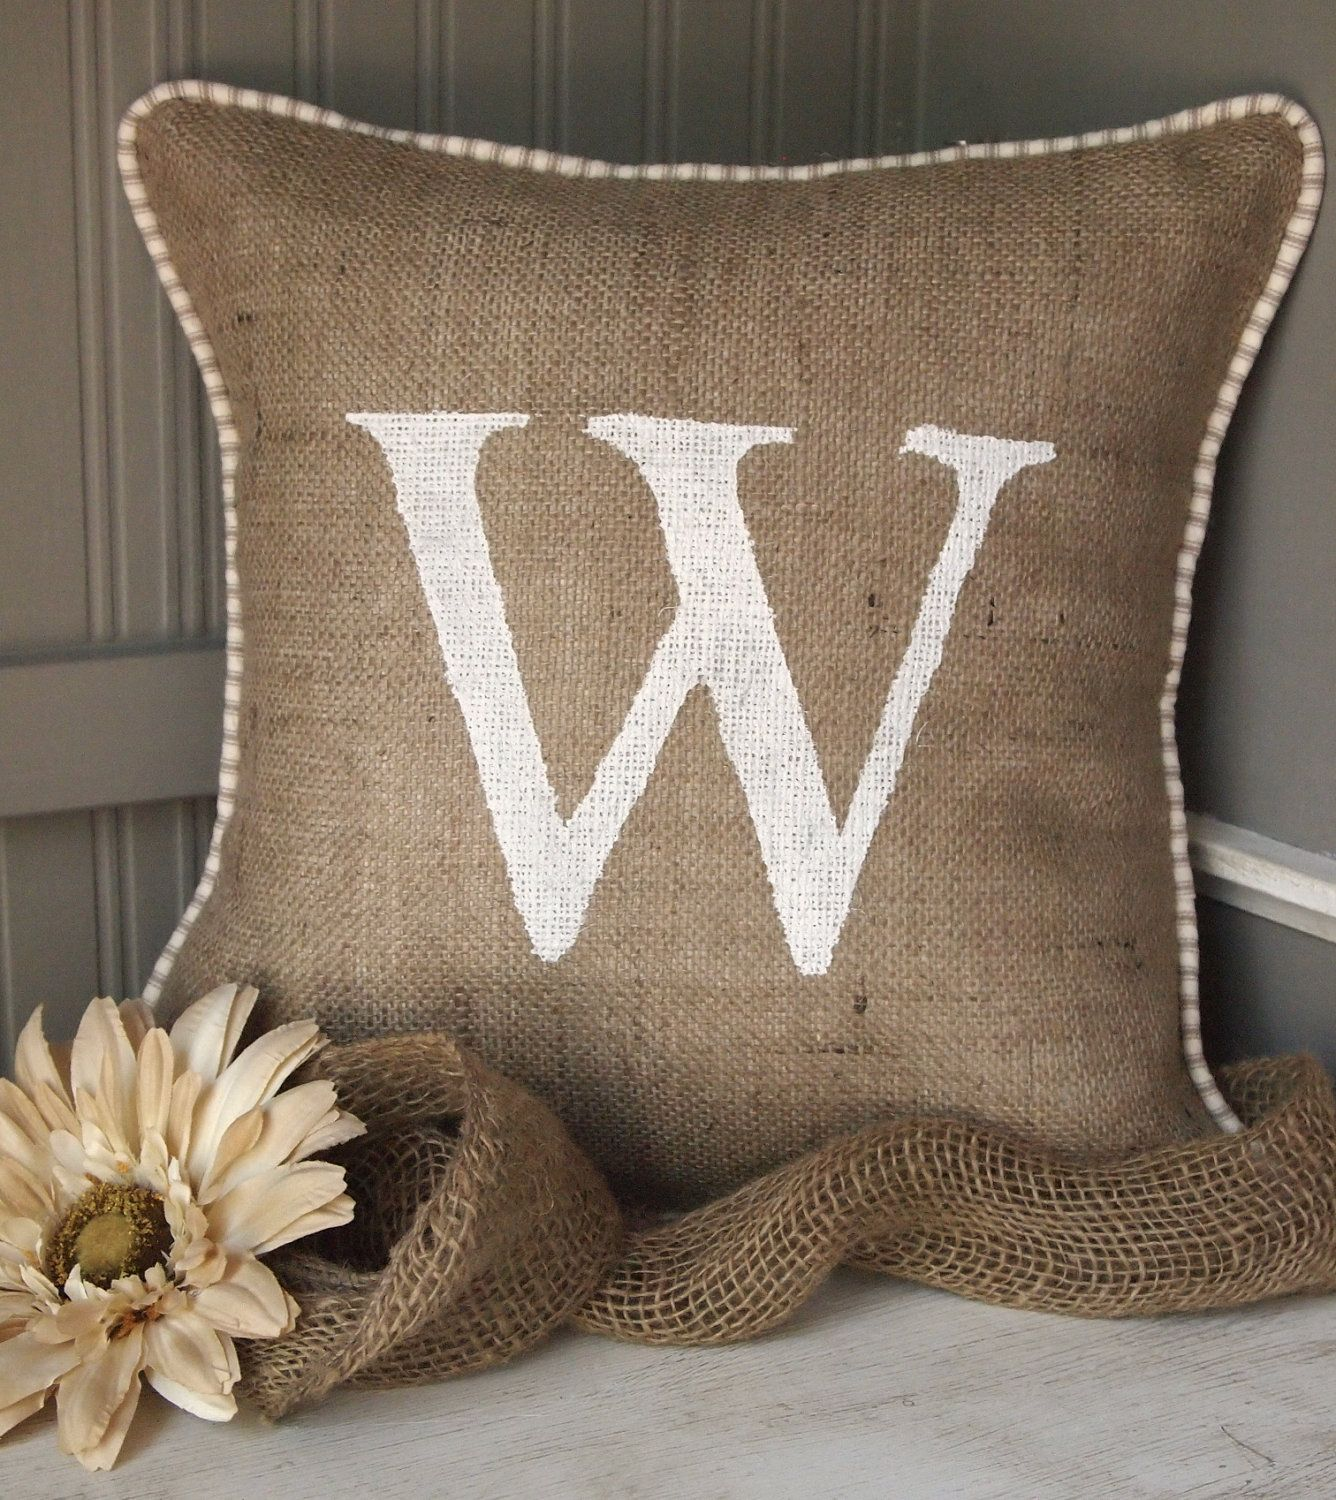 Initial Pillow Covers Inspiration Custom Hand Painted Monogram Burlap Pillow Cover With French 2018